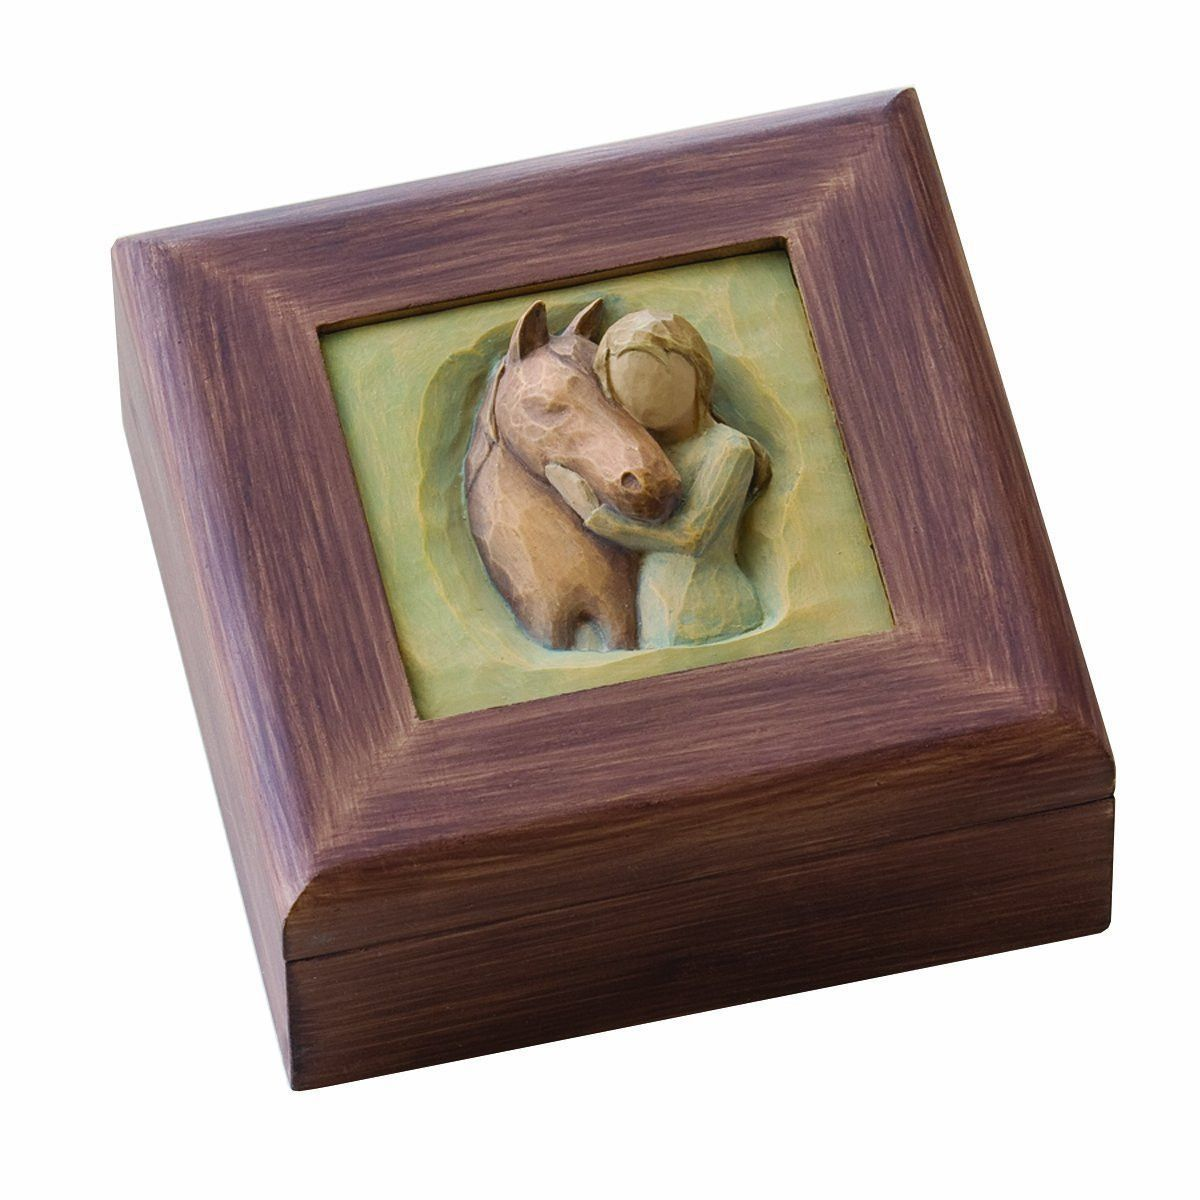 Horse Jewelry Box Horse Jewelry Box  Memory Box  Wood Projects  Pinterest  Horse